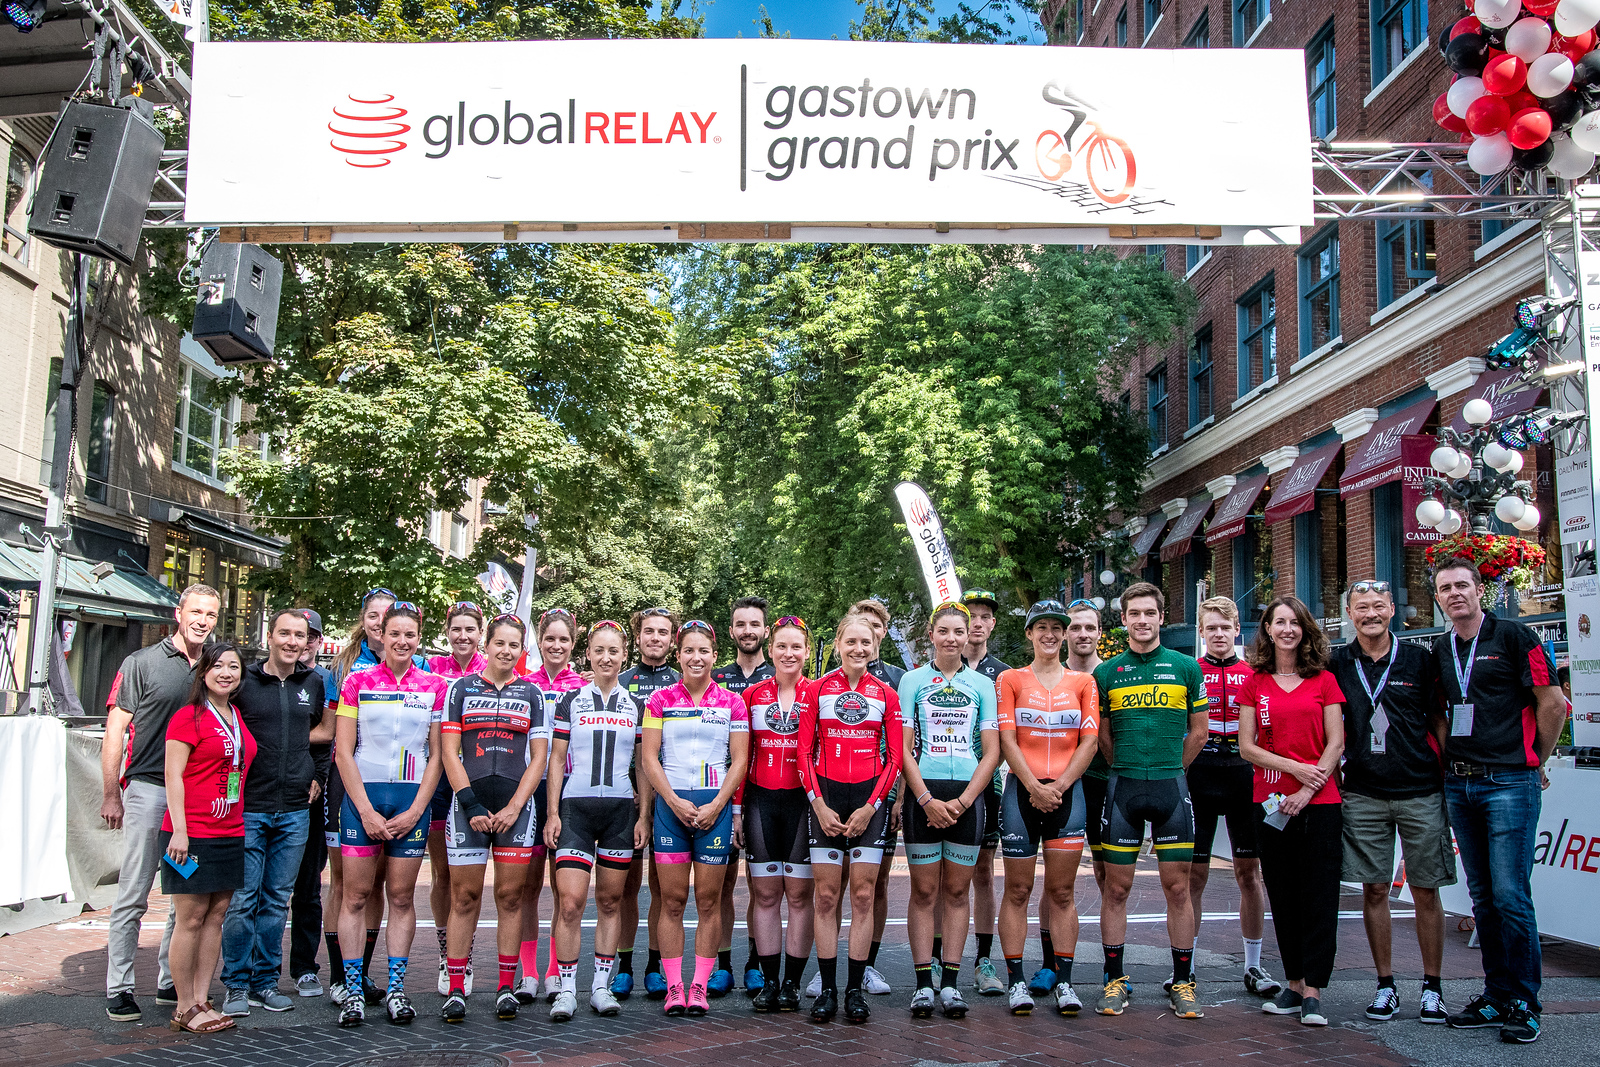 Global Relay Gastown Grand Prix 2017. Photo By: Scott Robarts